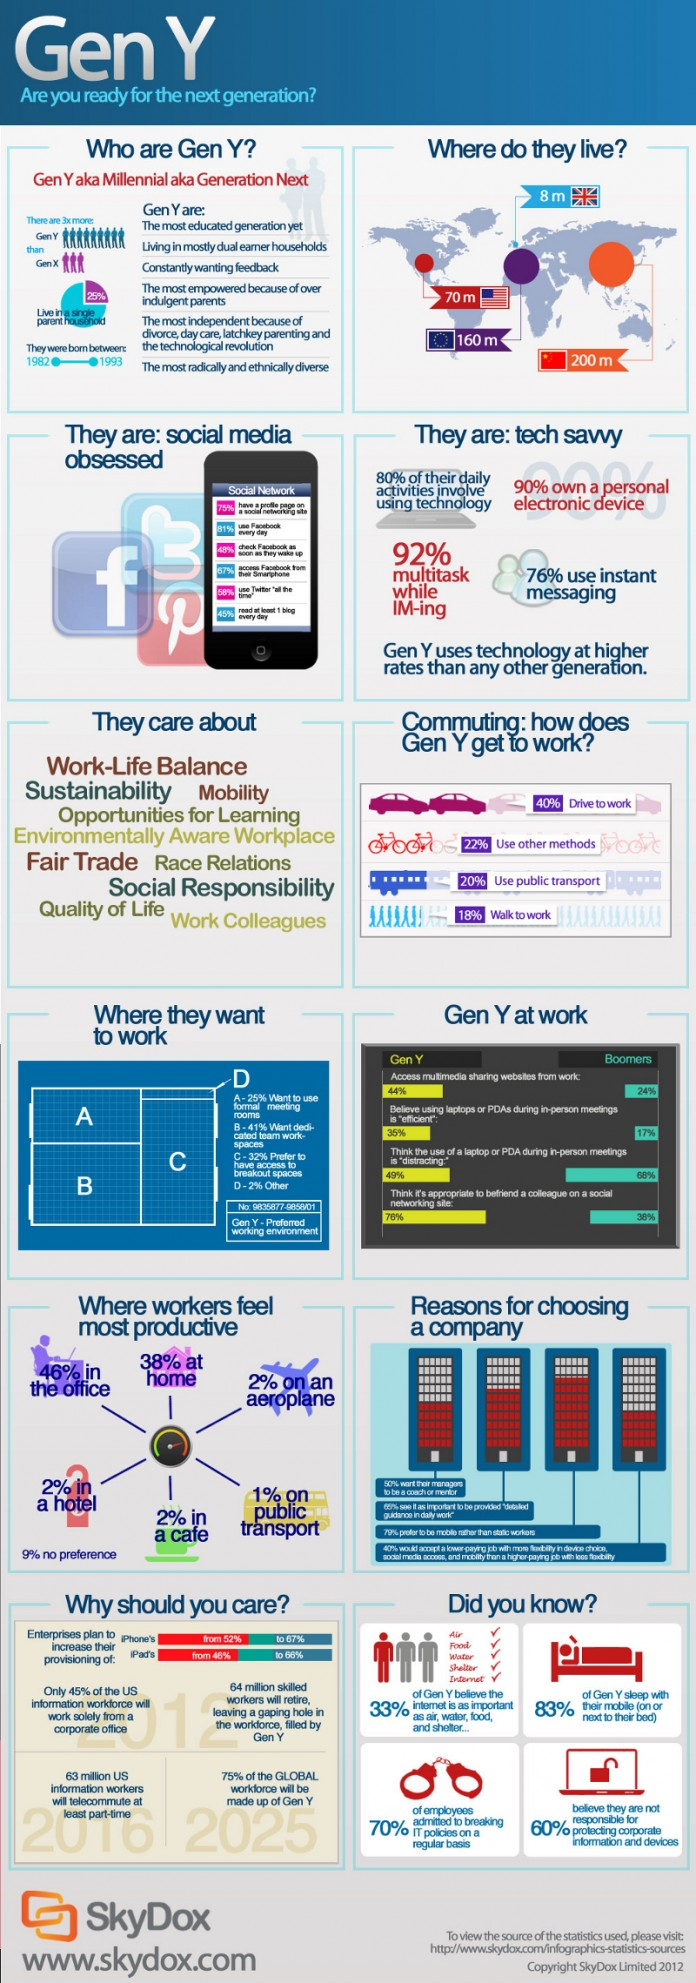 gen y in the workplace Generation y wants work to be fun and flexible because the line between work and life is seamless (in other words, there is no such thing as work-life balance because it's all just one thing) generation y also follows a mantra of working smarter, not harder.